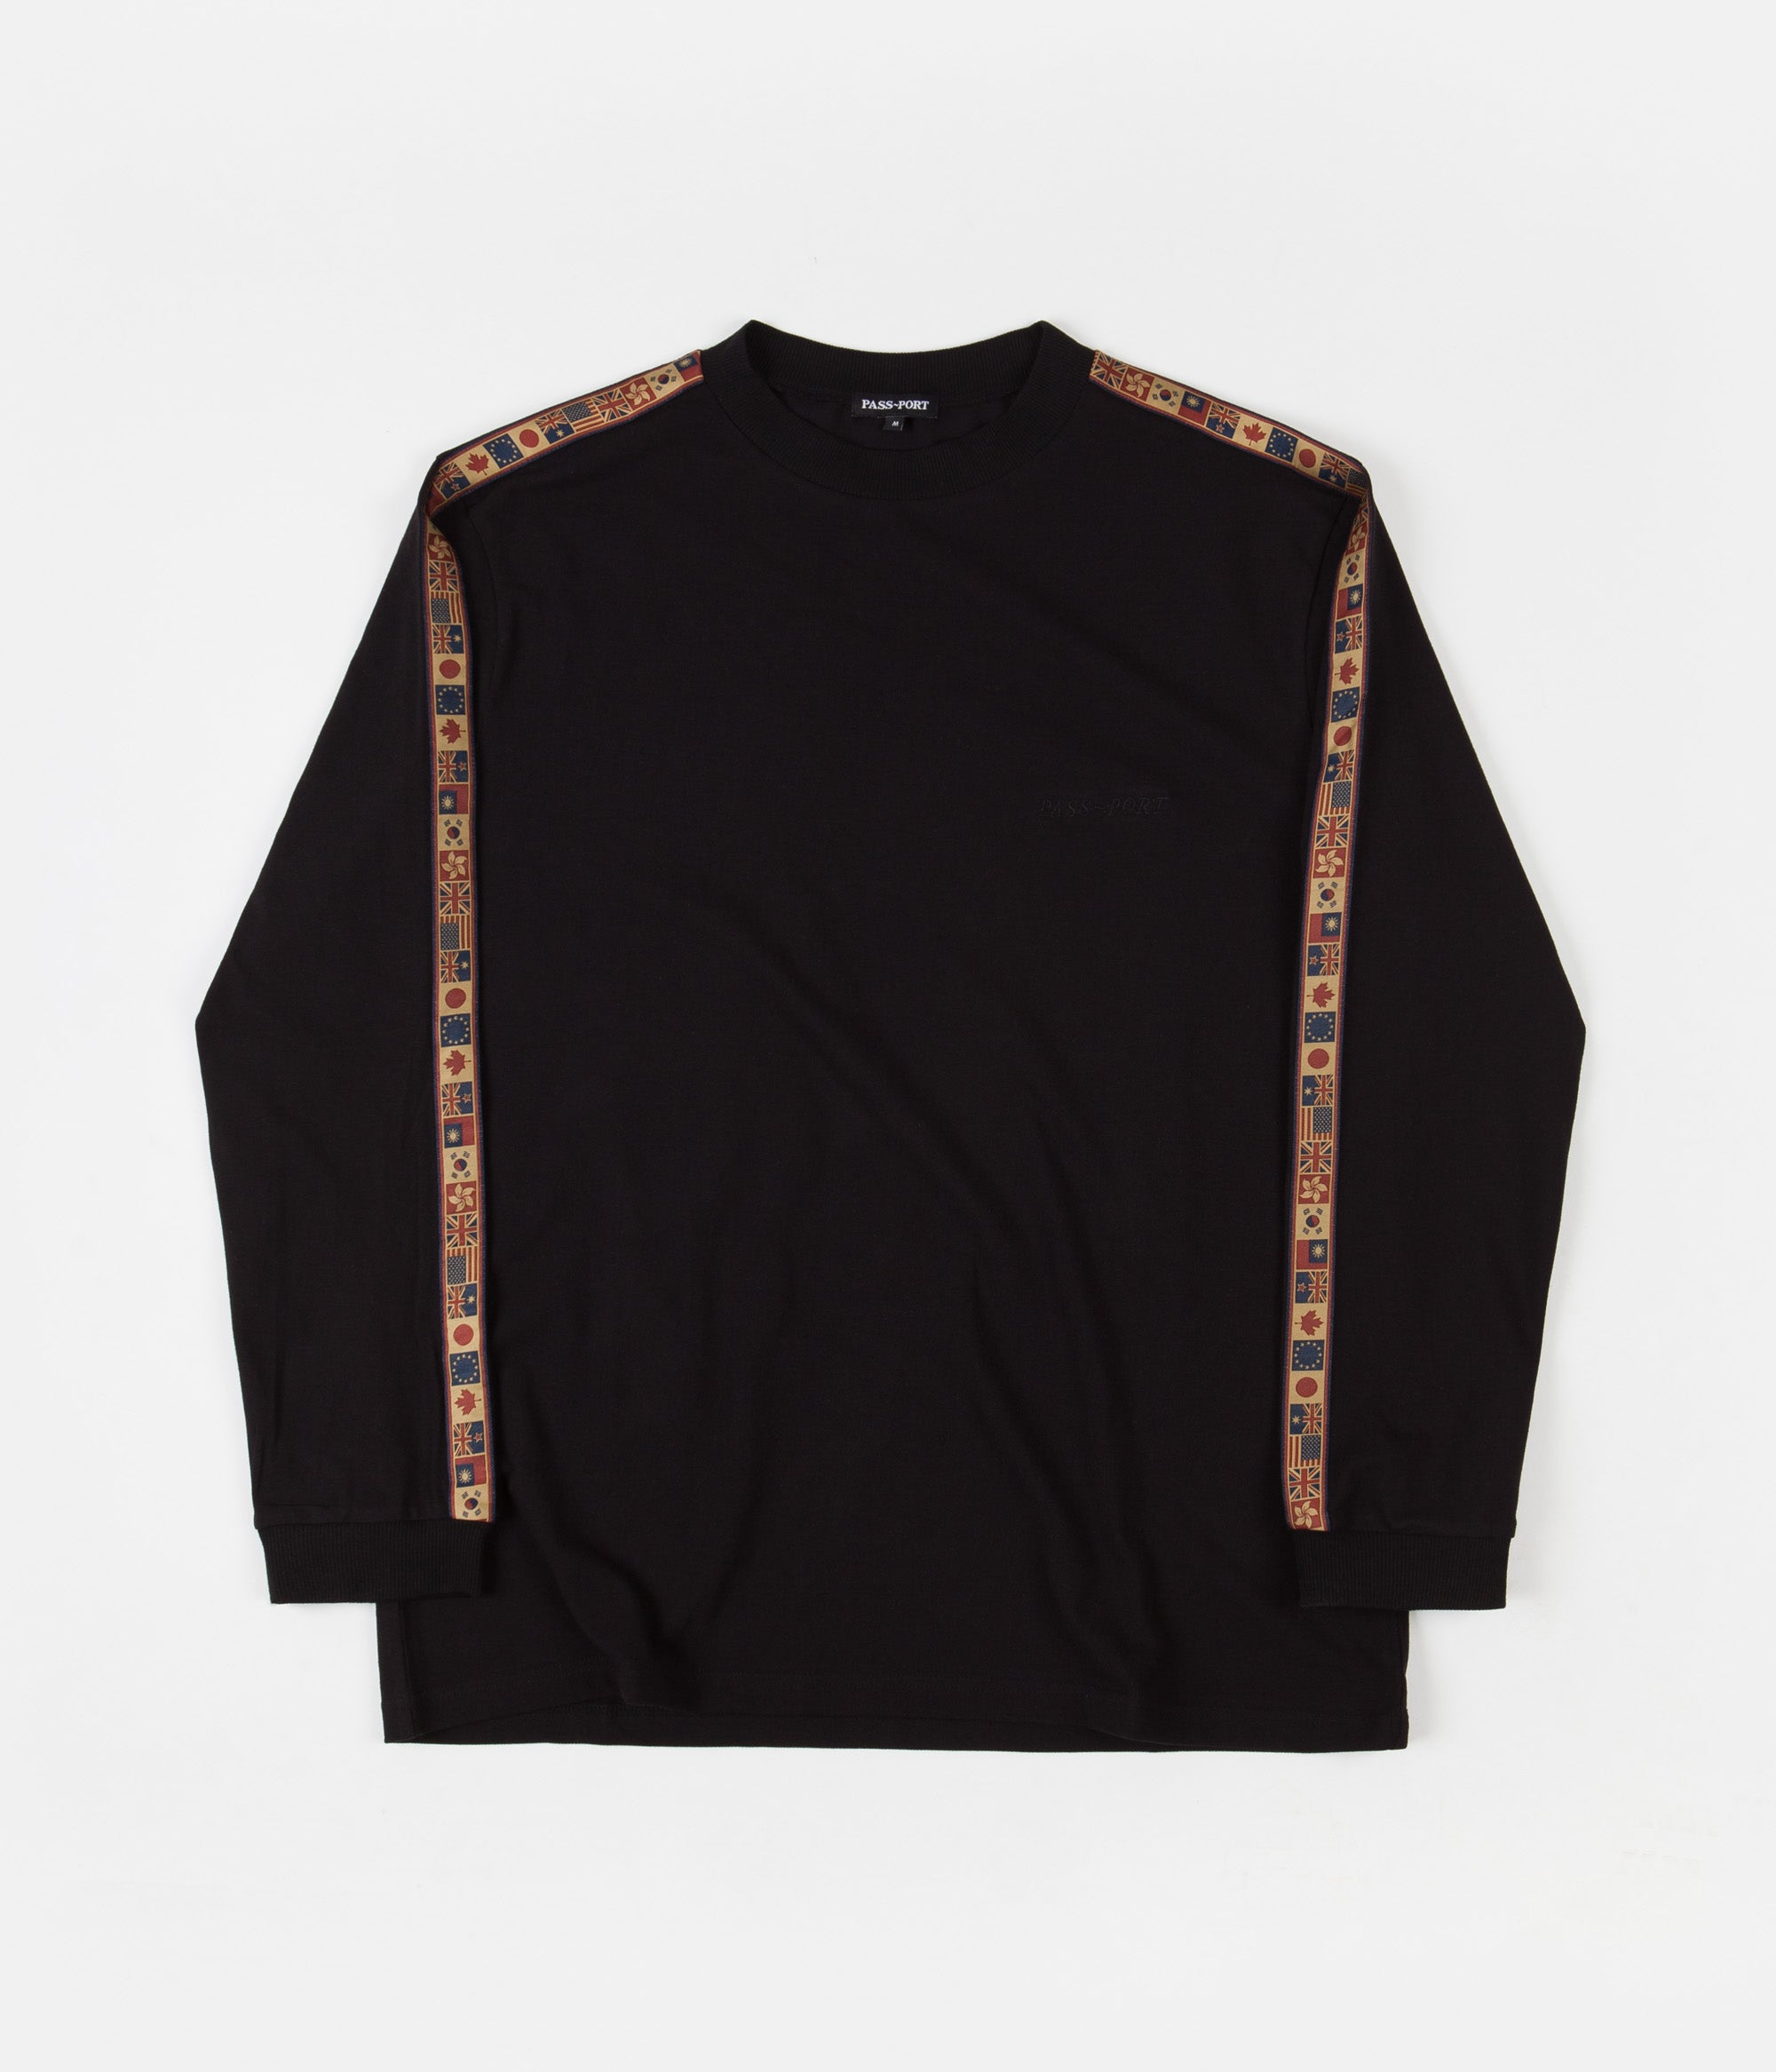 Pass Port International Embroidery Ribbon Long Sleeve T-Shirt - Black